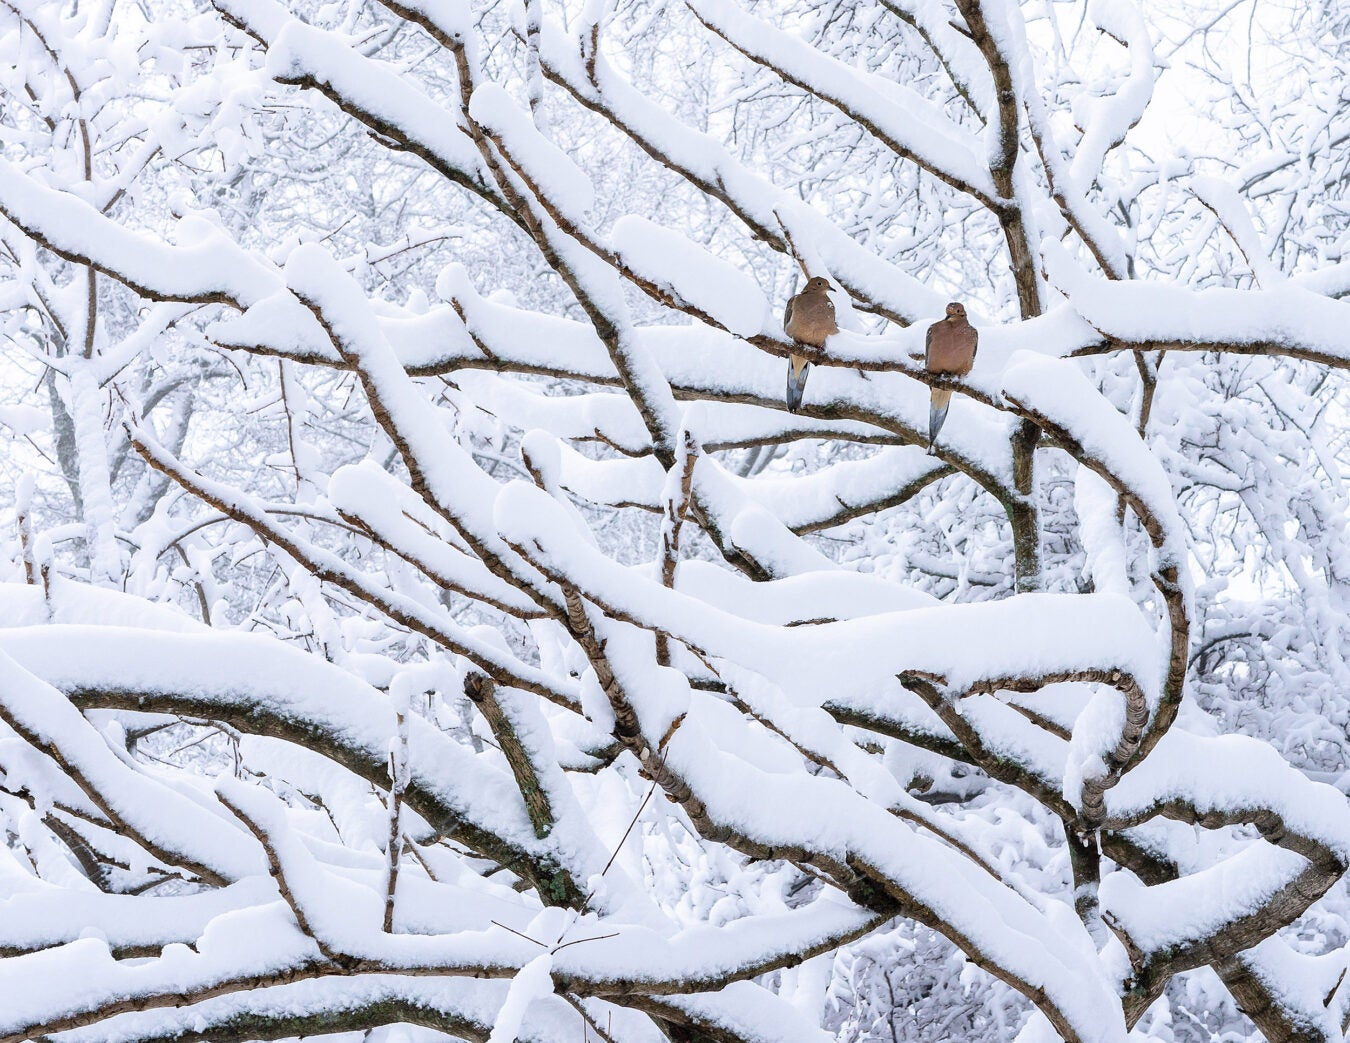 Mourning doves in snowy branches.